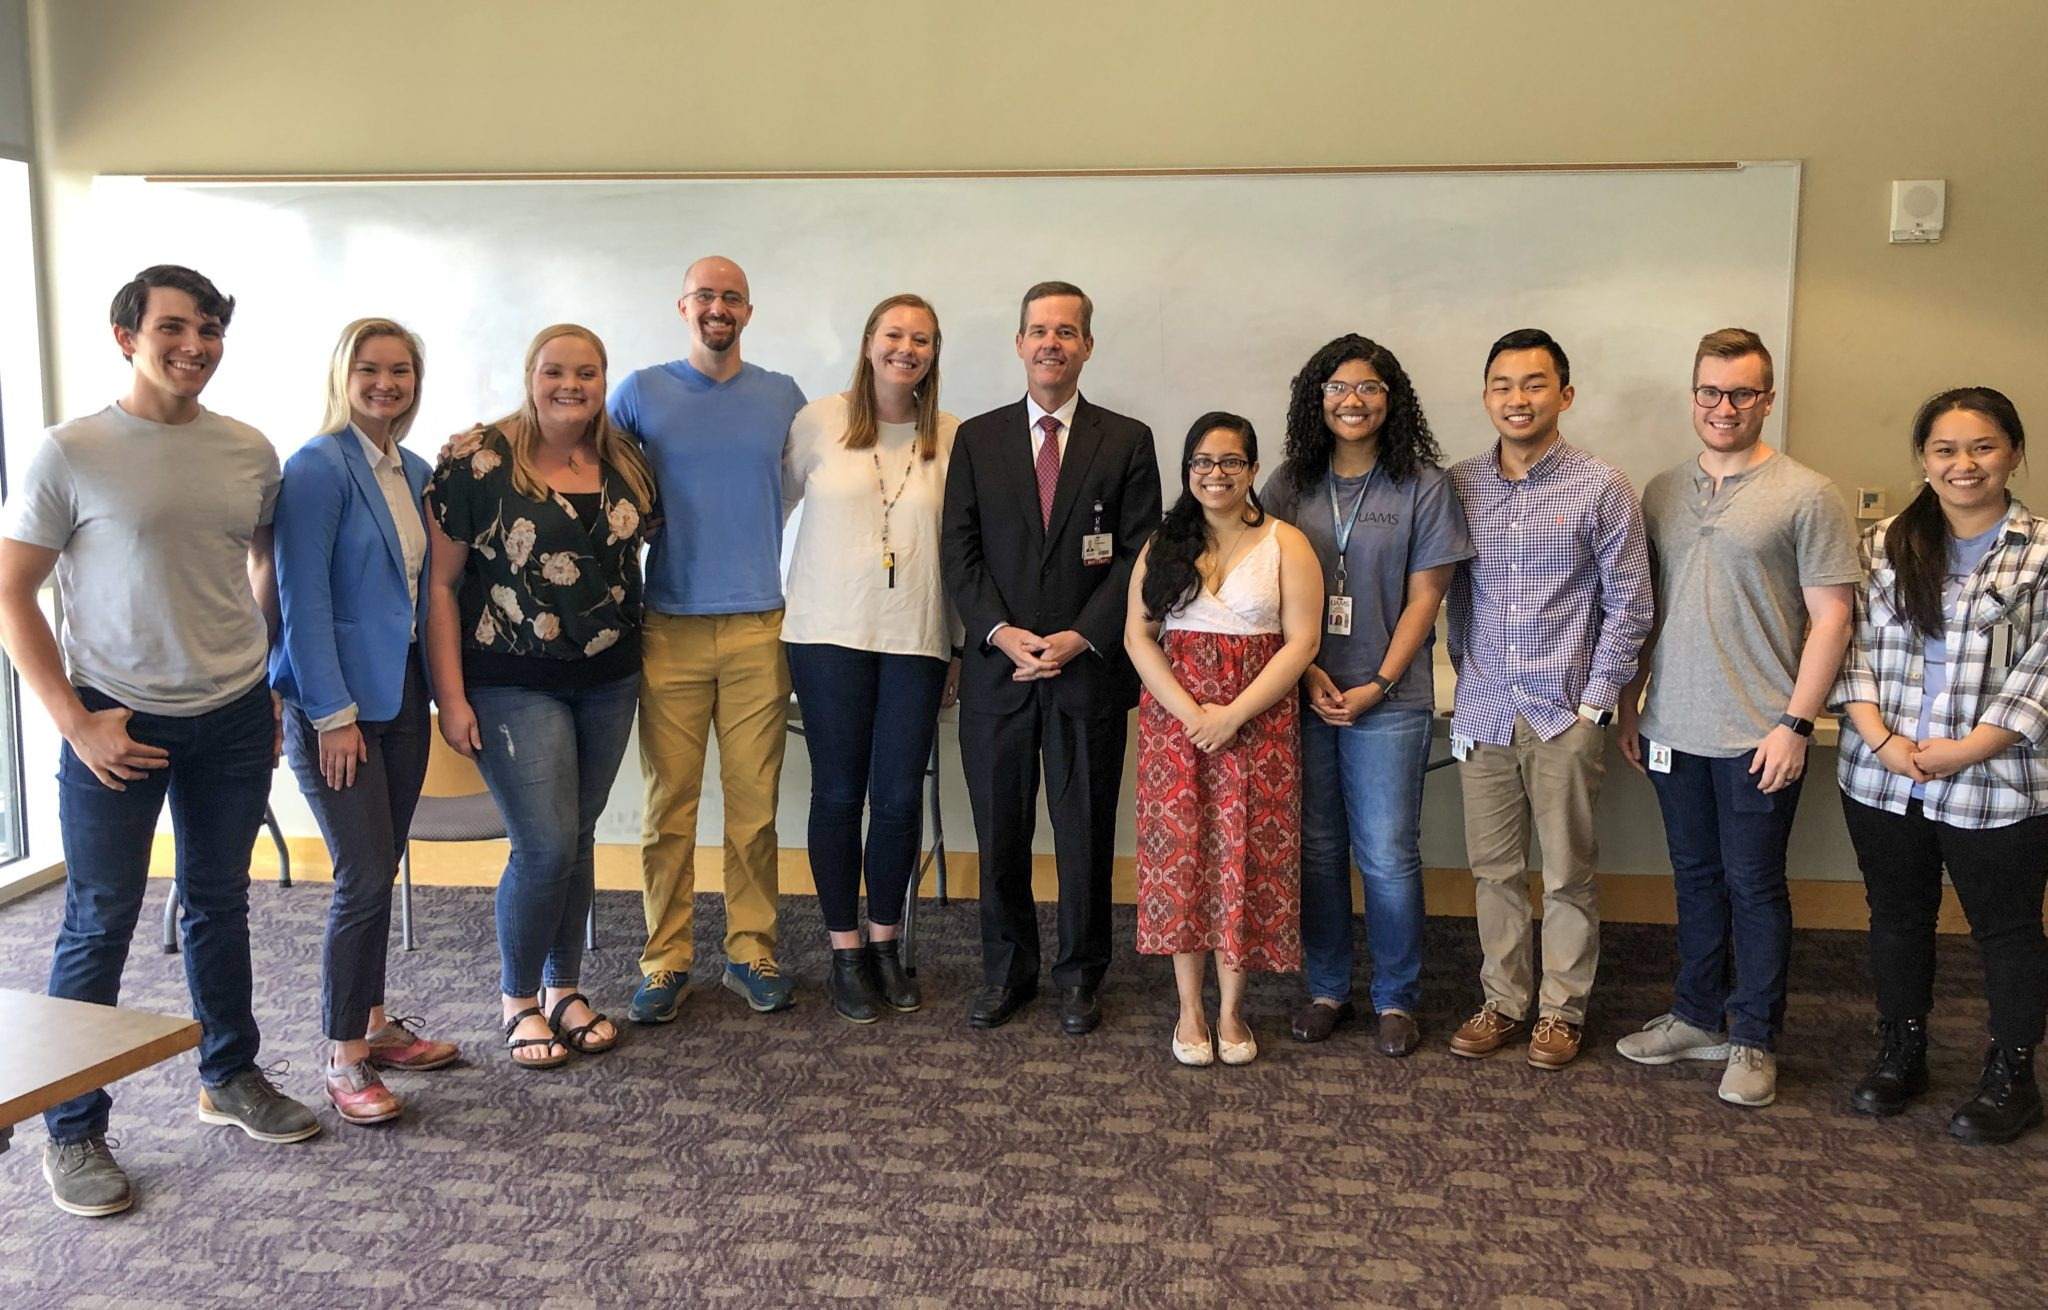 Group photo with Dr. Patterson